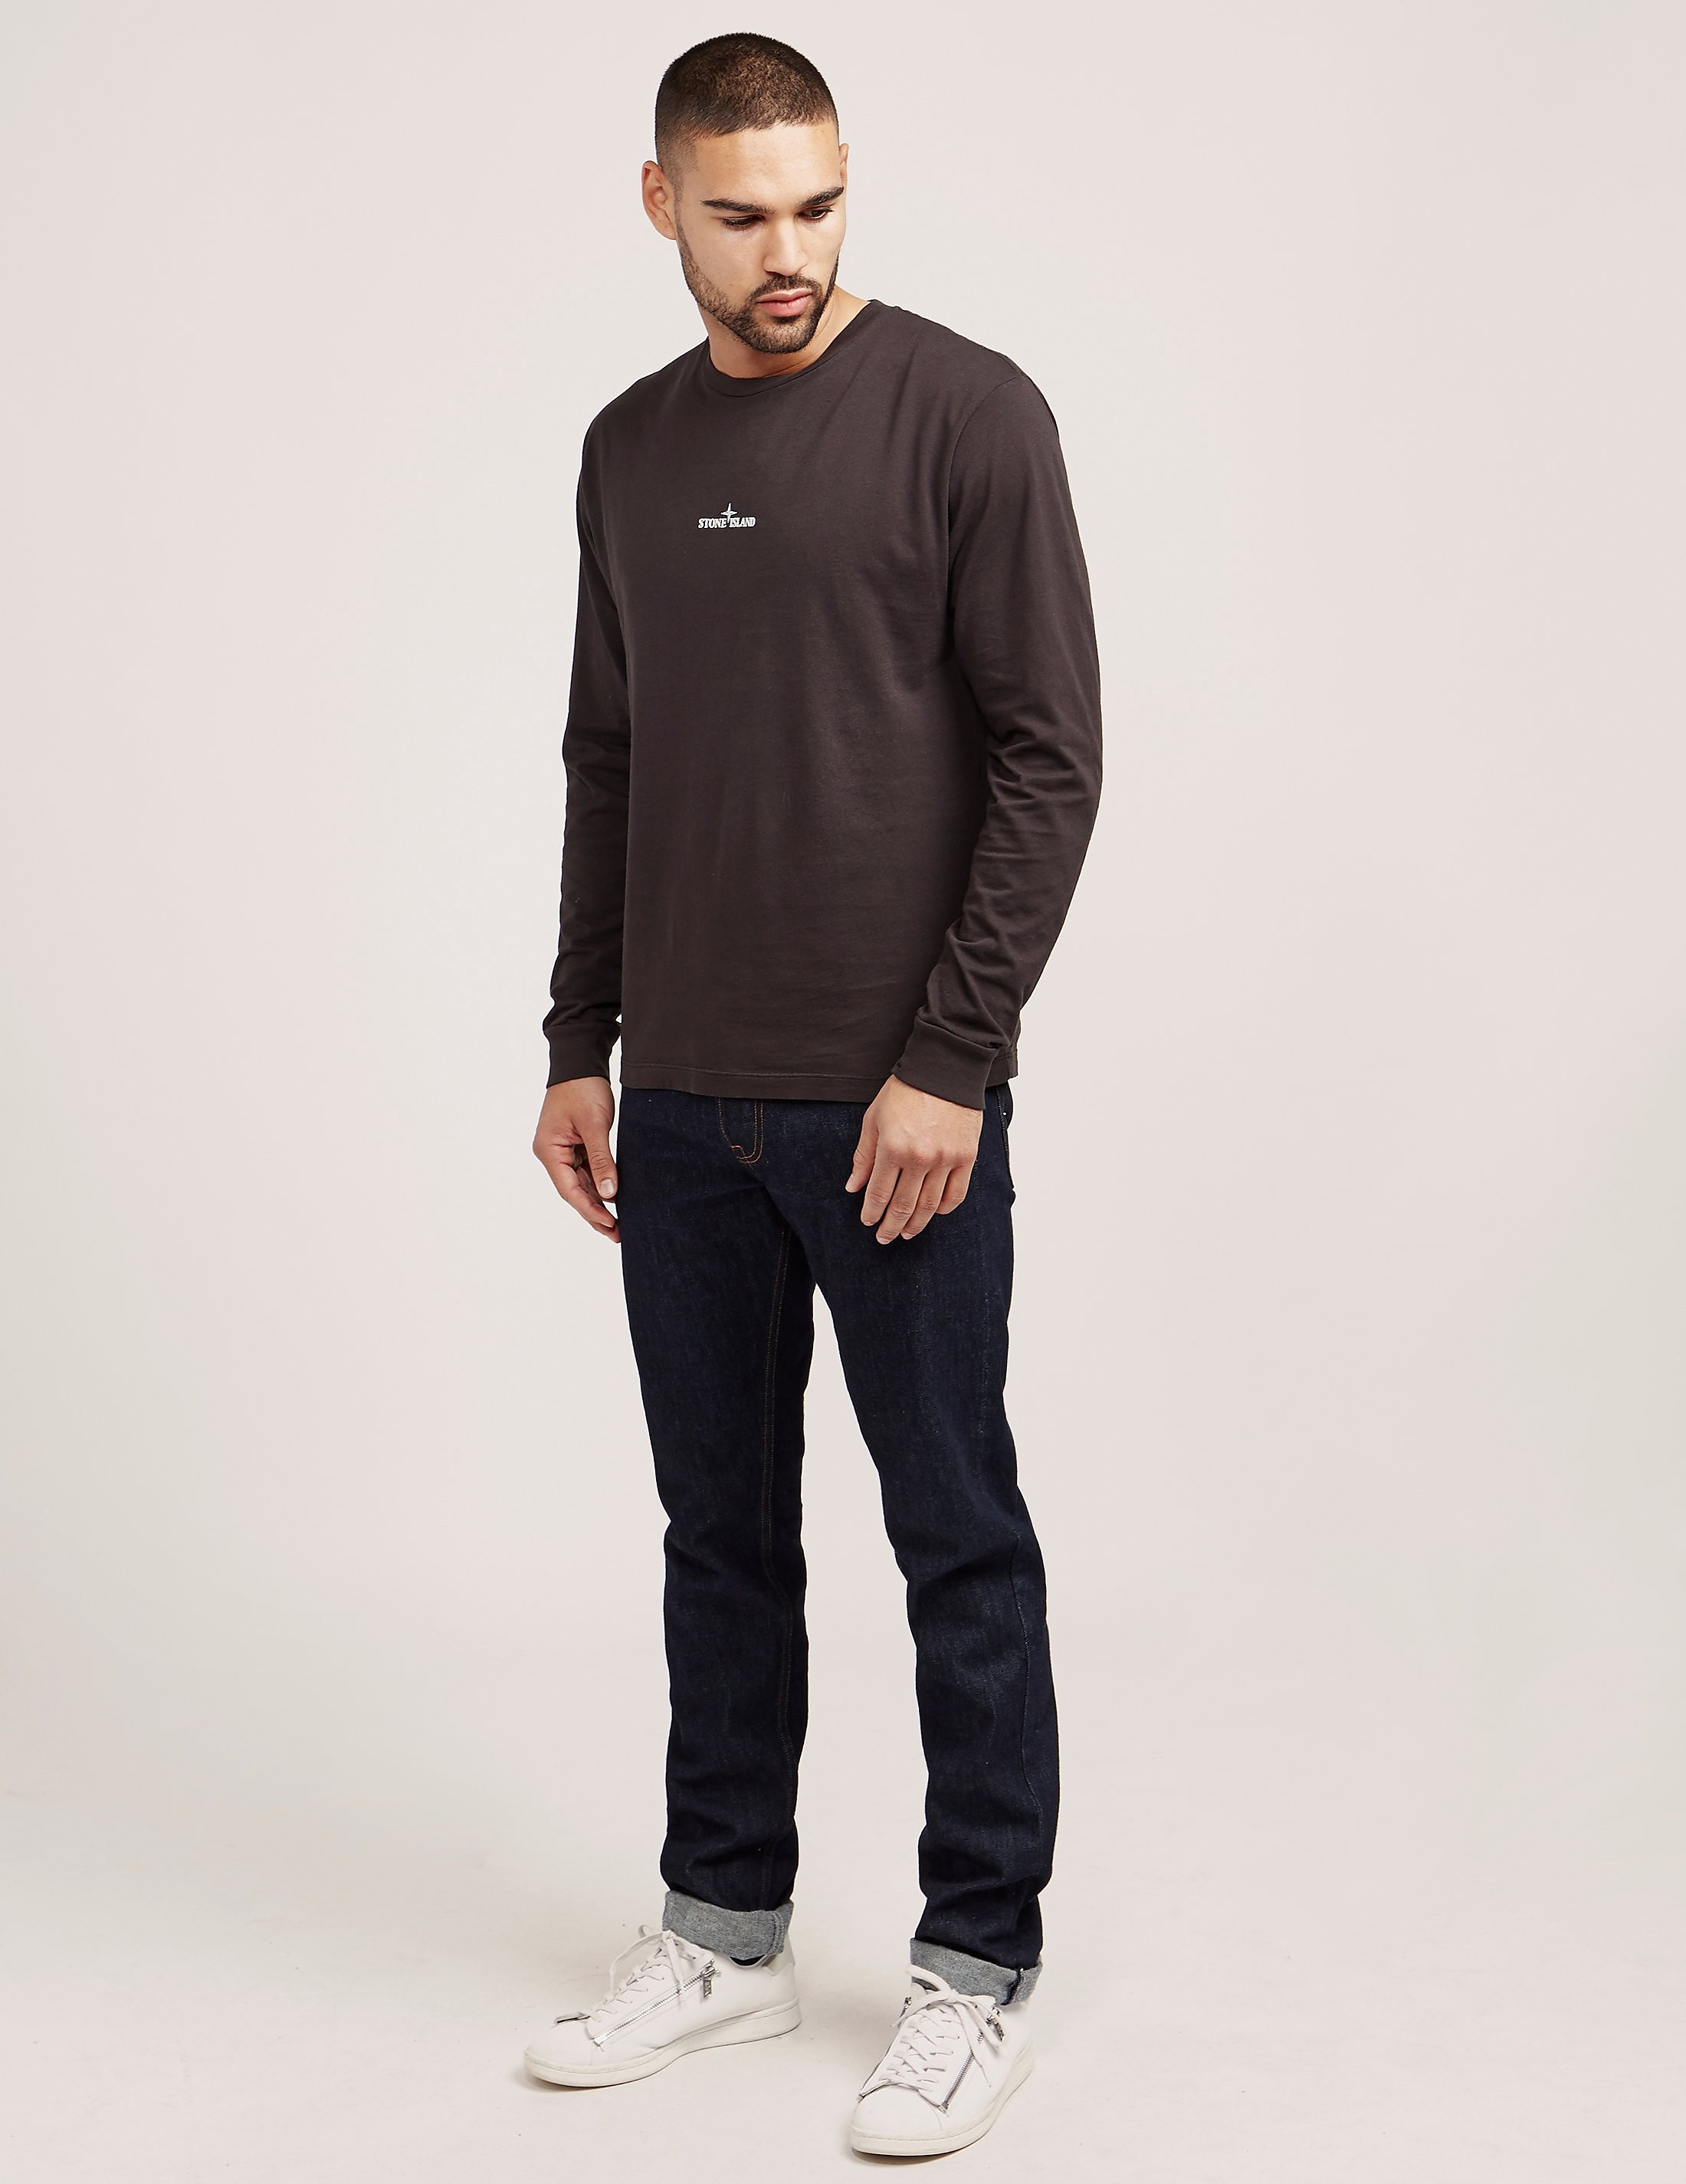 Stone Island Back Pin Long Sleeve T-Shirt